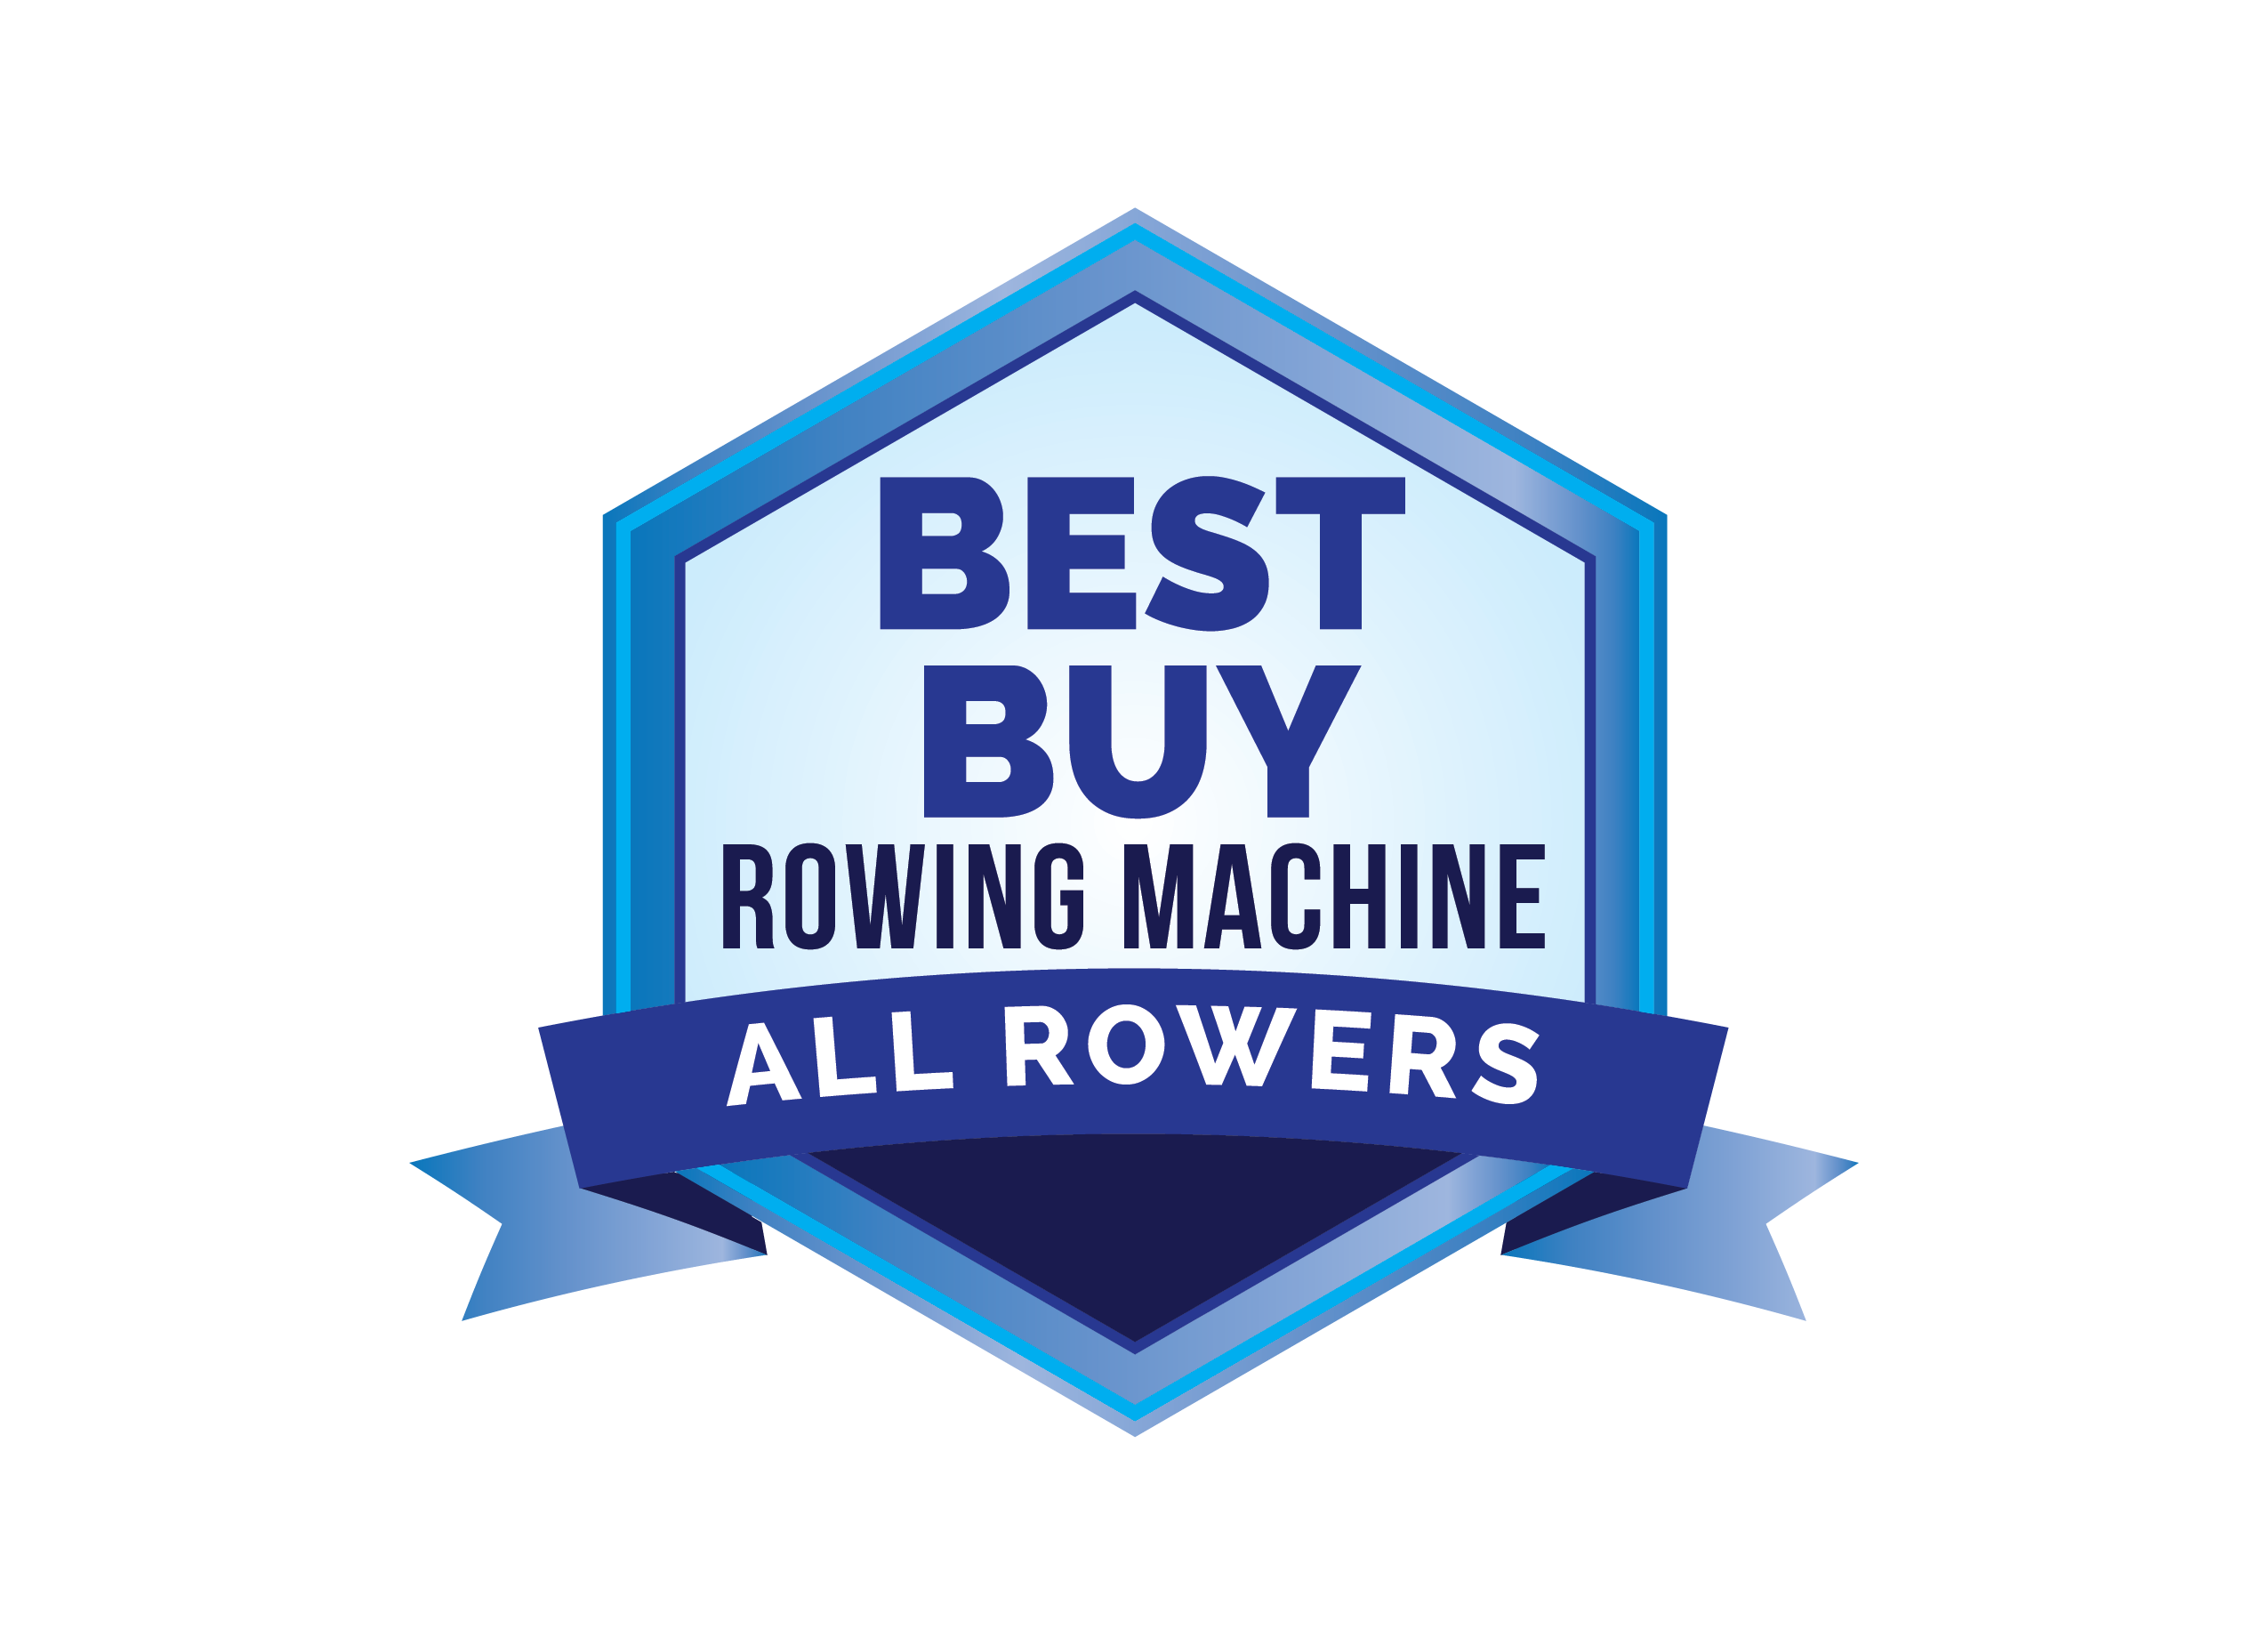 All Rowers Best Buy Rowing Machines - 2020 Badge